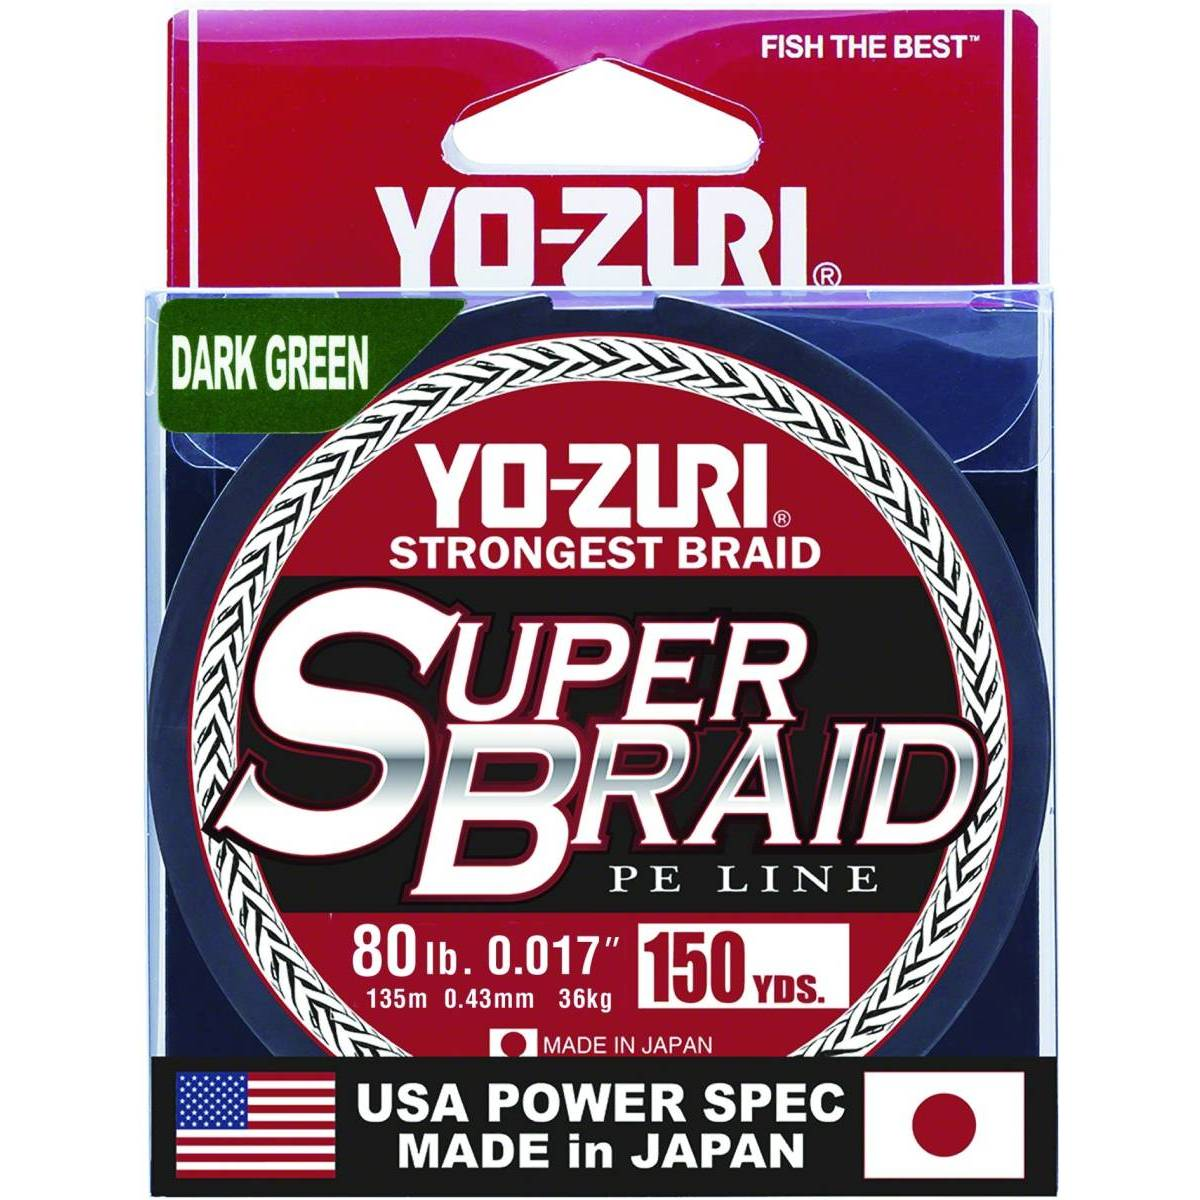 Yo-Zuri SuperBraid Line; This is part of the Braided collection offered from Fishin' My Best Life - fishinmybestlife.com